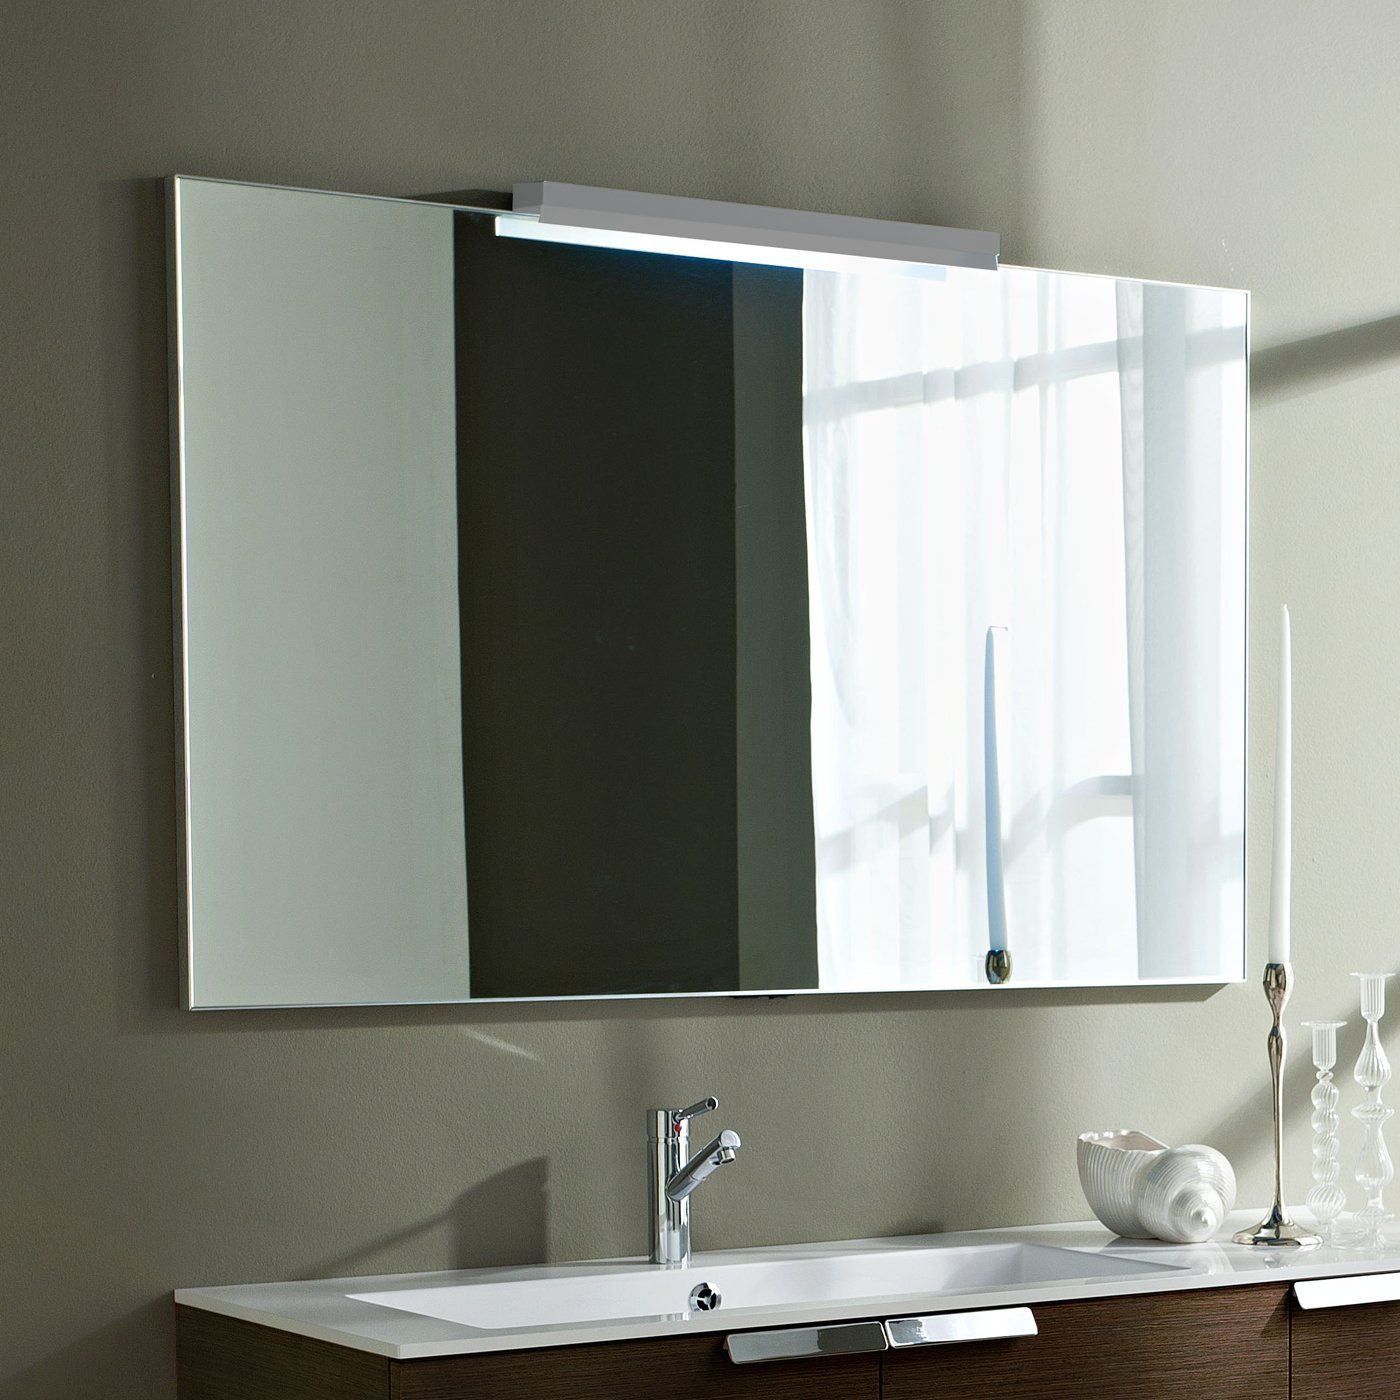 Bathroom Mirror Ideas There Square Measure A Incalculable Style Of Ways To Develop A Lavatory Fr Bathroom Mirror Large Bathroom Mirrors Bathroom Mirrors Diy